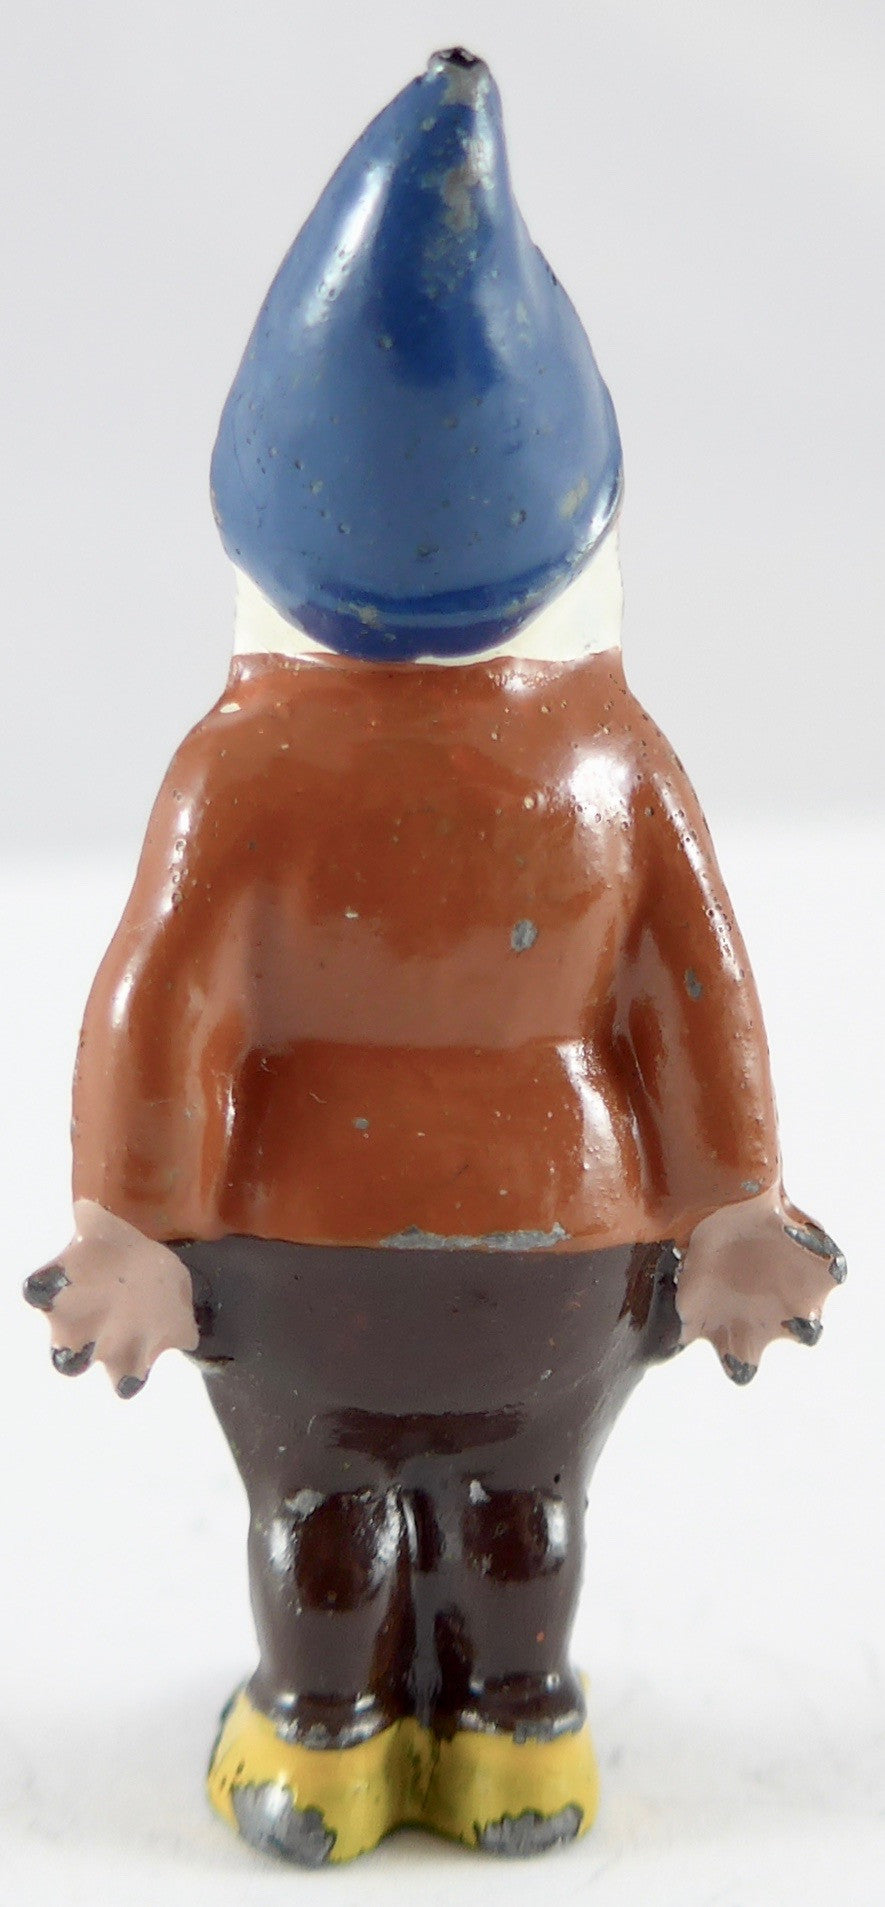 Britains Bashful dwarf from Snow White set